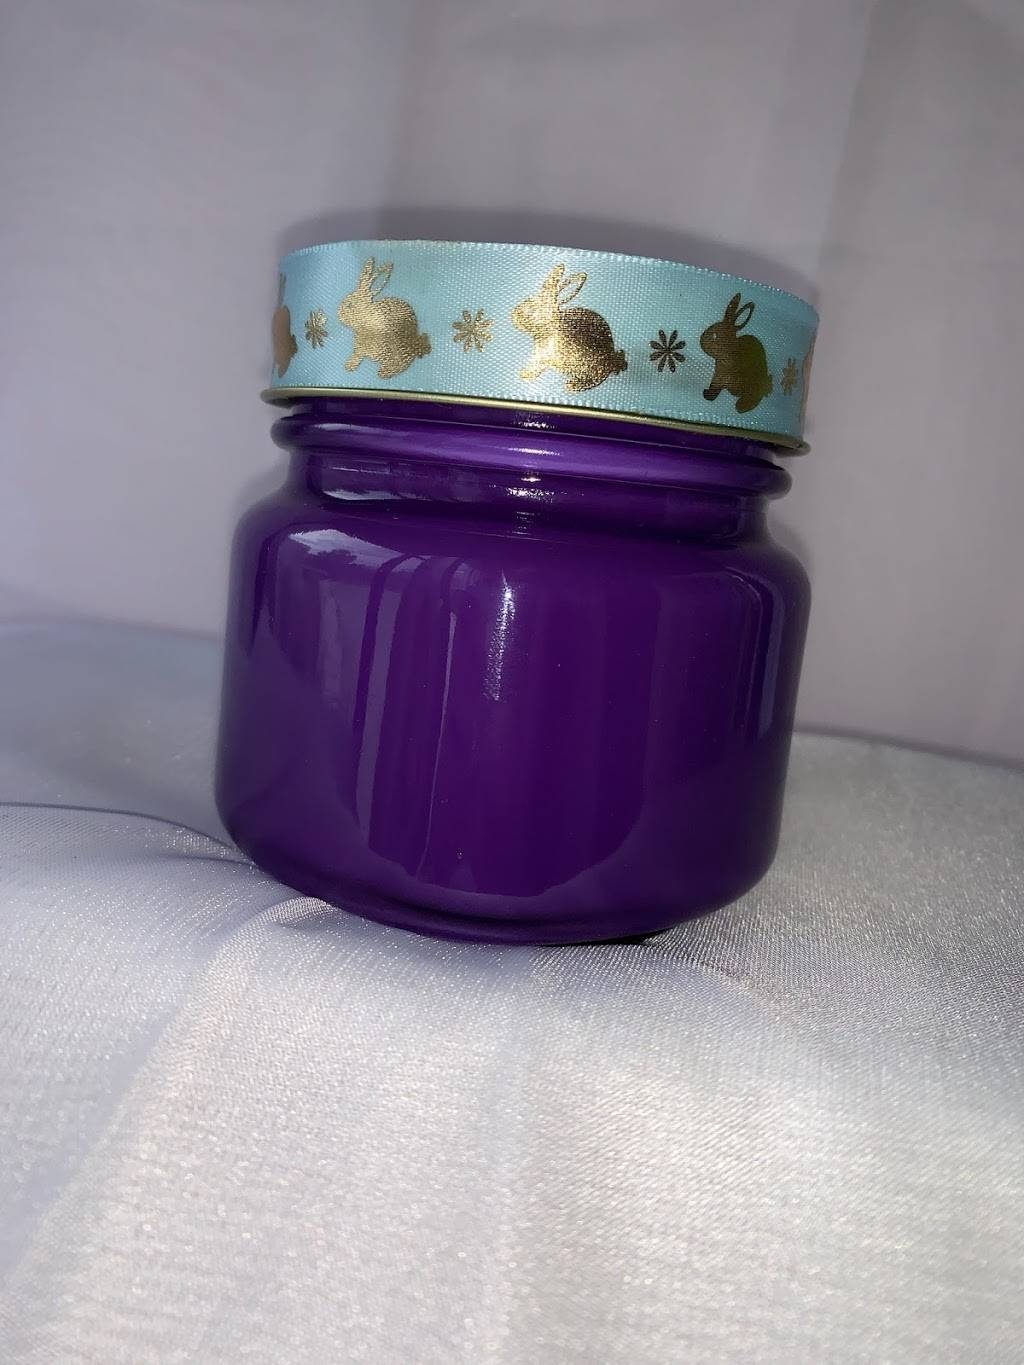 Chandlery Candles - home goods store  | Photo 5 of 9 | Address: 650 Maryland Ave W, St Paul, MN 55117, USA | Phone: (253) 293-0290